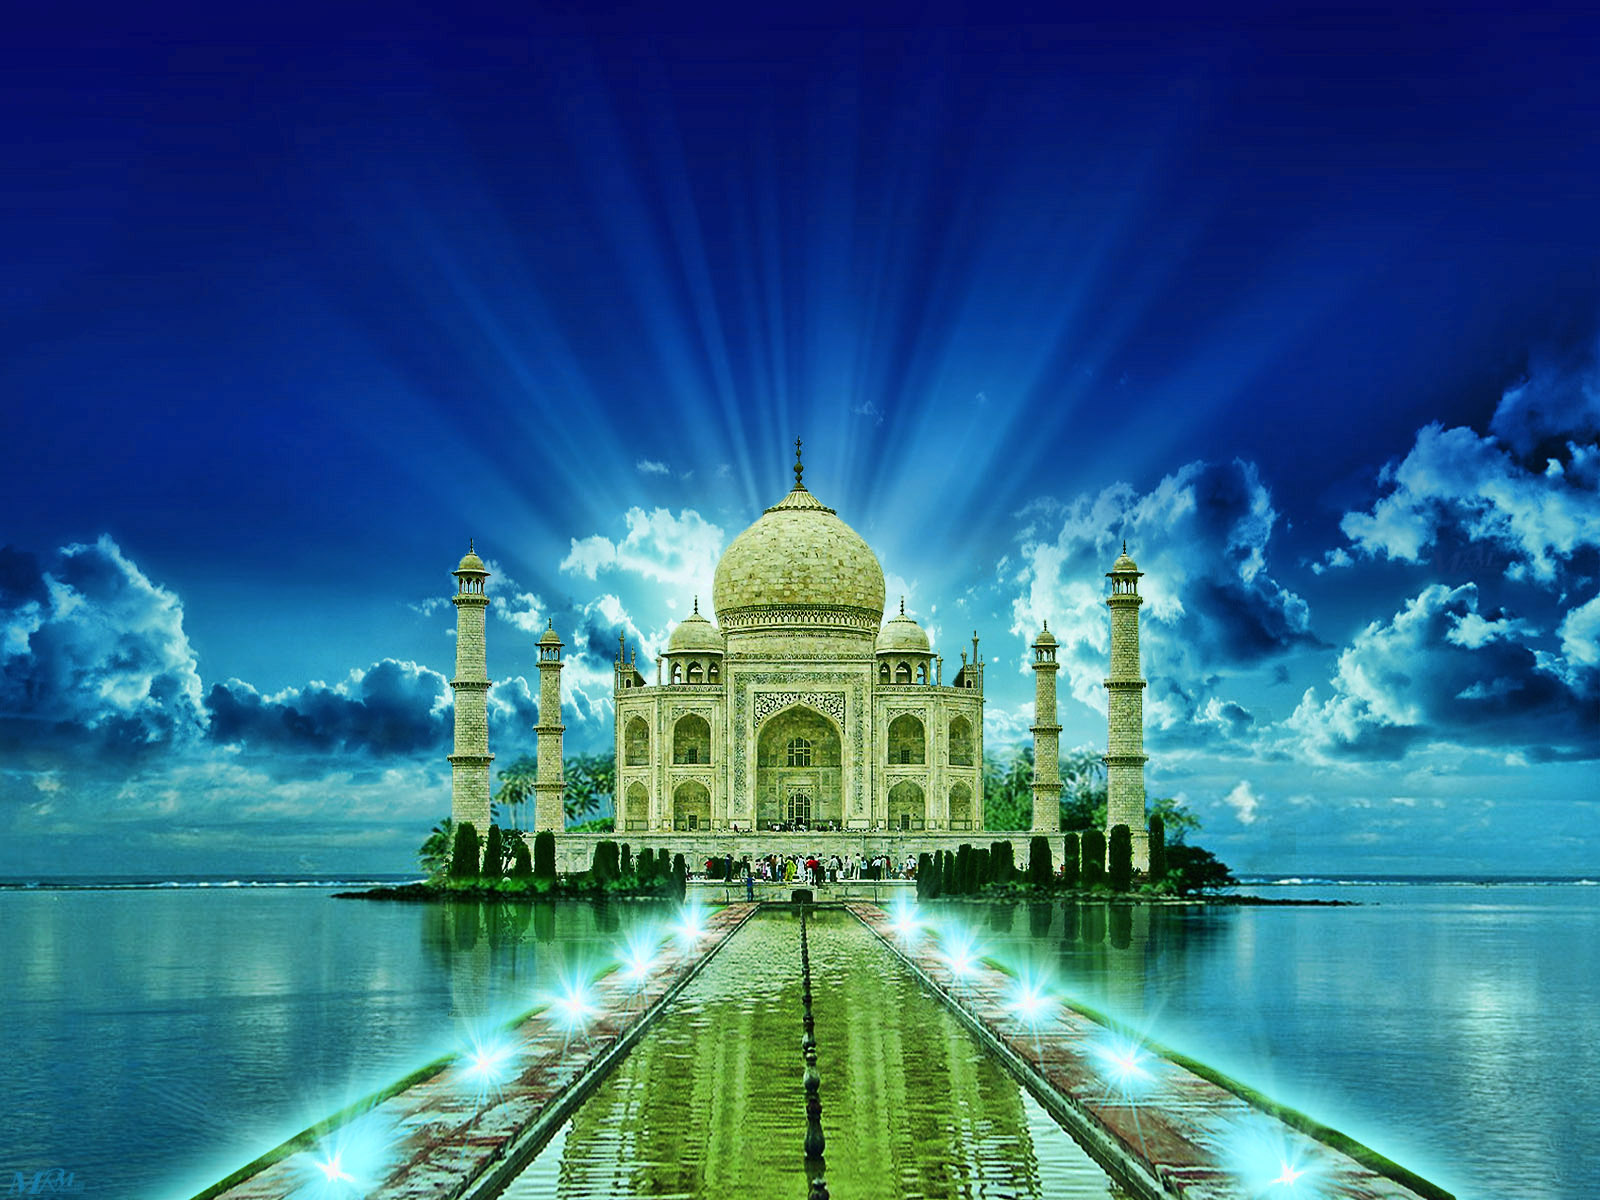 HD WALLPAPER GALLERY Taj Mahal India wallpaper 1600x1200